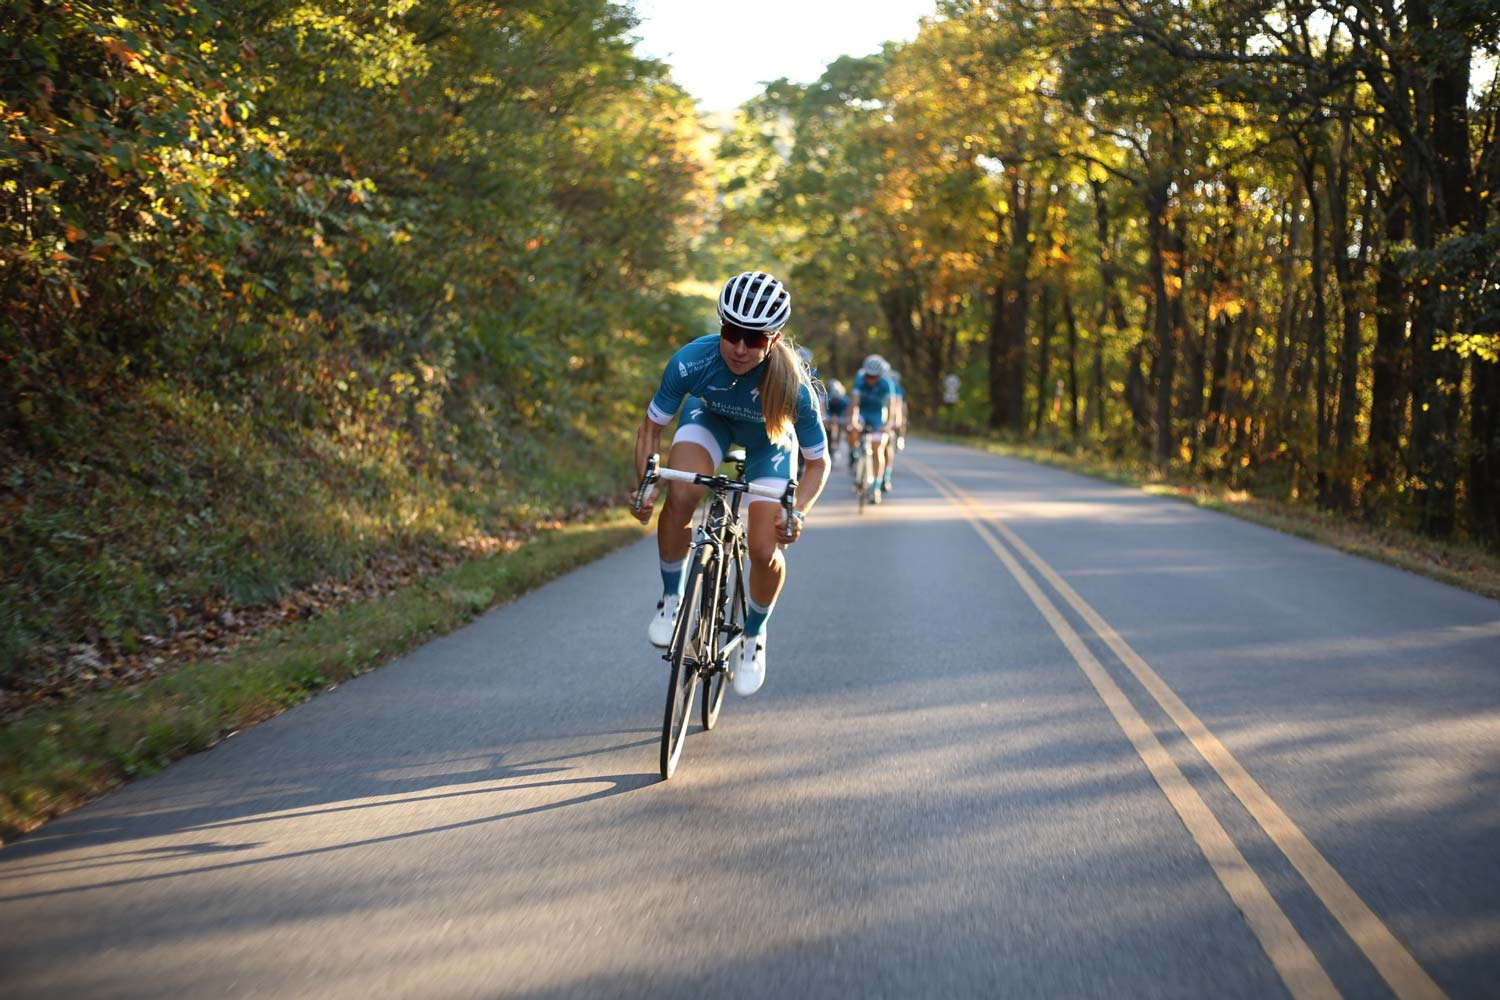 As a coach at The Miller School of Albemarle, Dvorak shares lessons learned from her successful 10-year international cycling career.